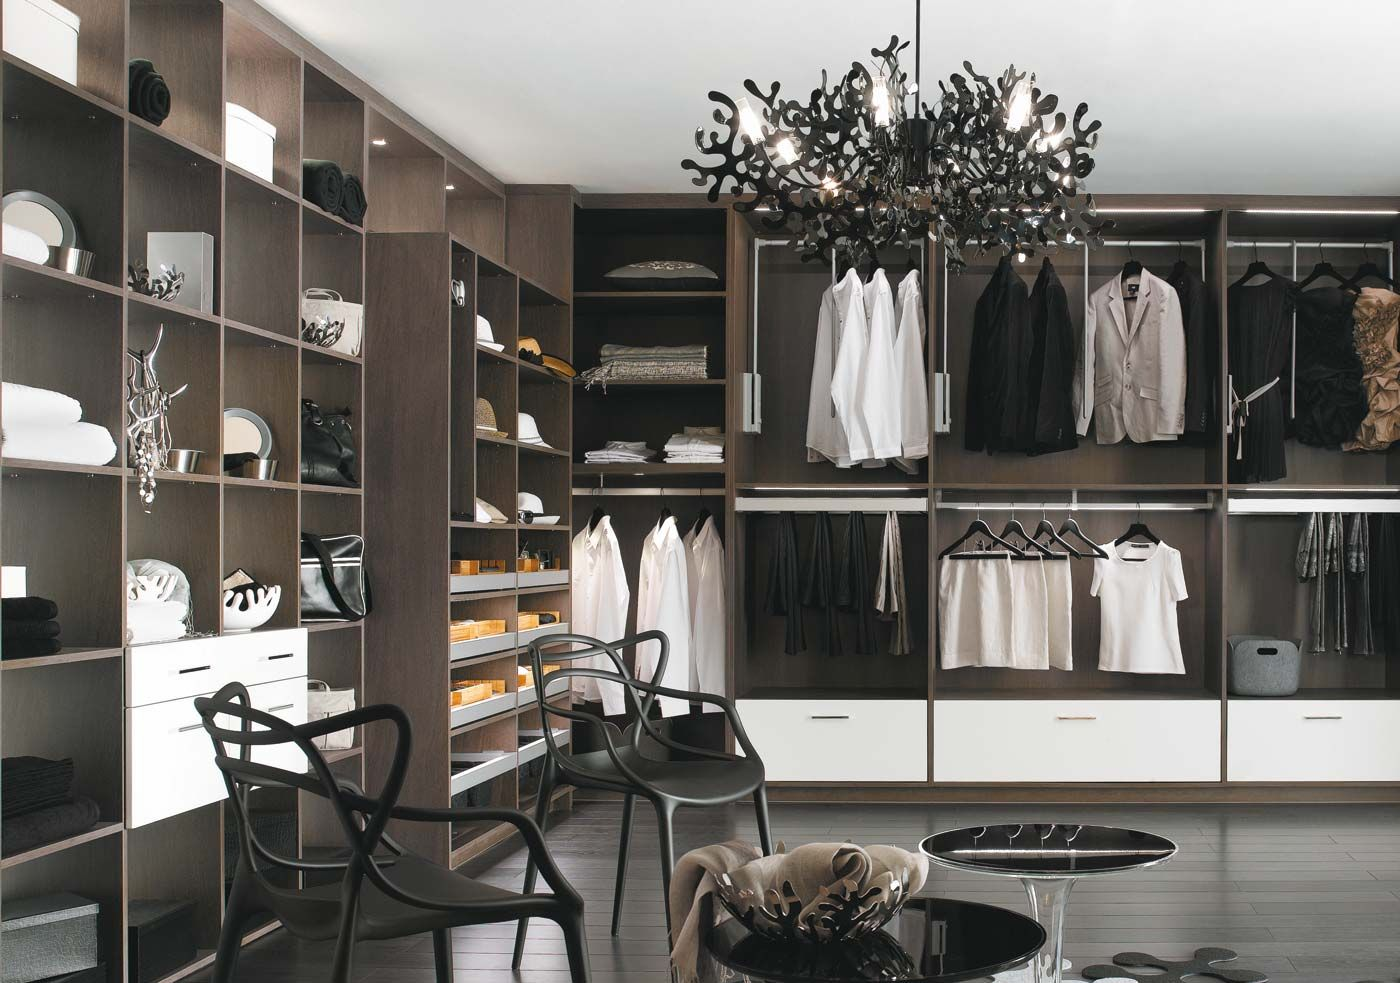 bain d tails essentiels dressing irr sistible perene lyon dressing chambre pinterest. Black Bedroom Furniture Sets. Home Design Ideas